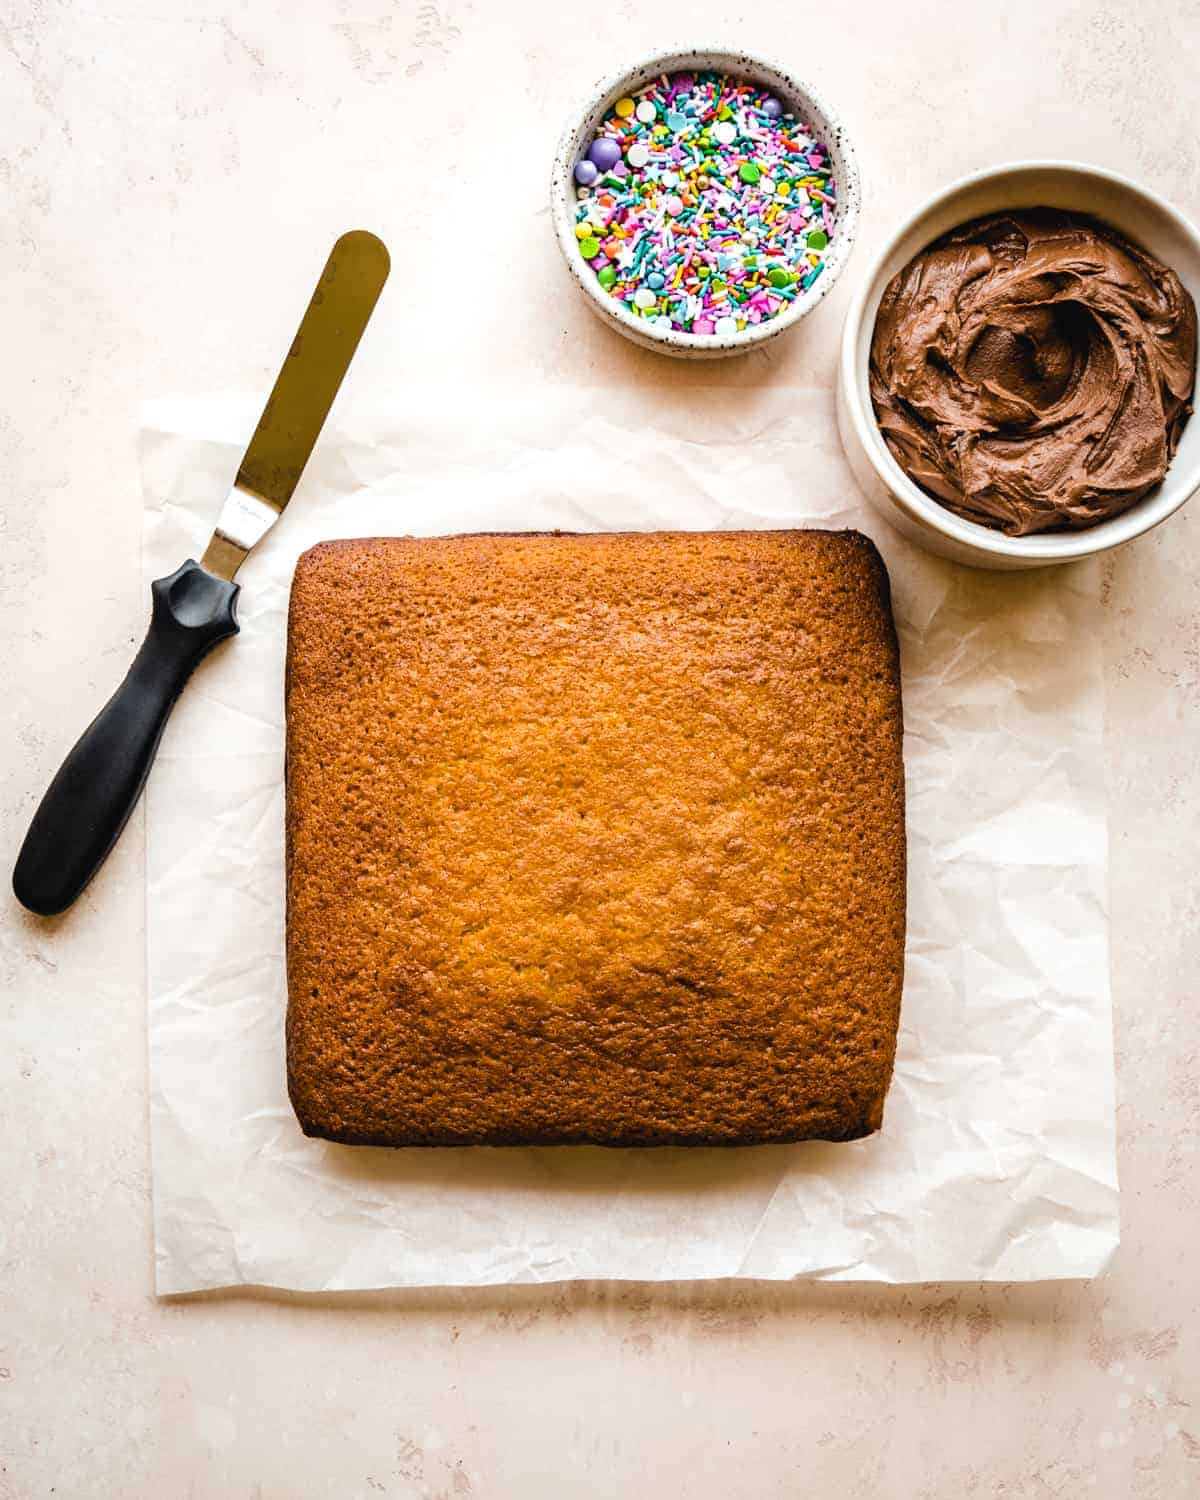 square vanilla cake getting ready to frost with a bowl of chocolate frosting an offset spatula and a bowl of rainbow sprinkles